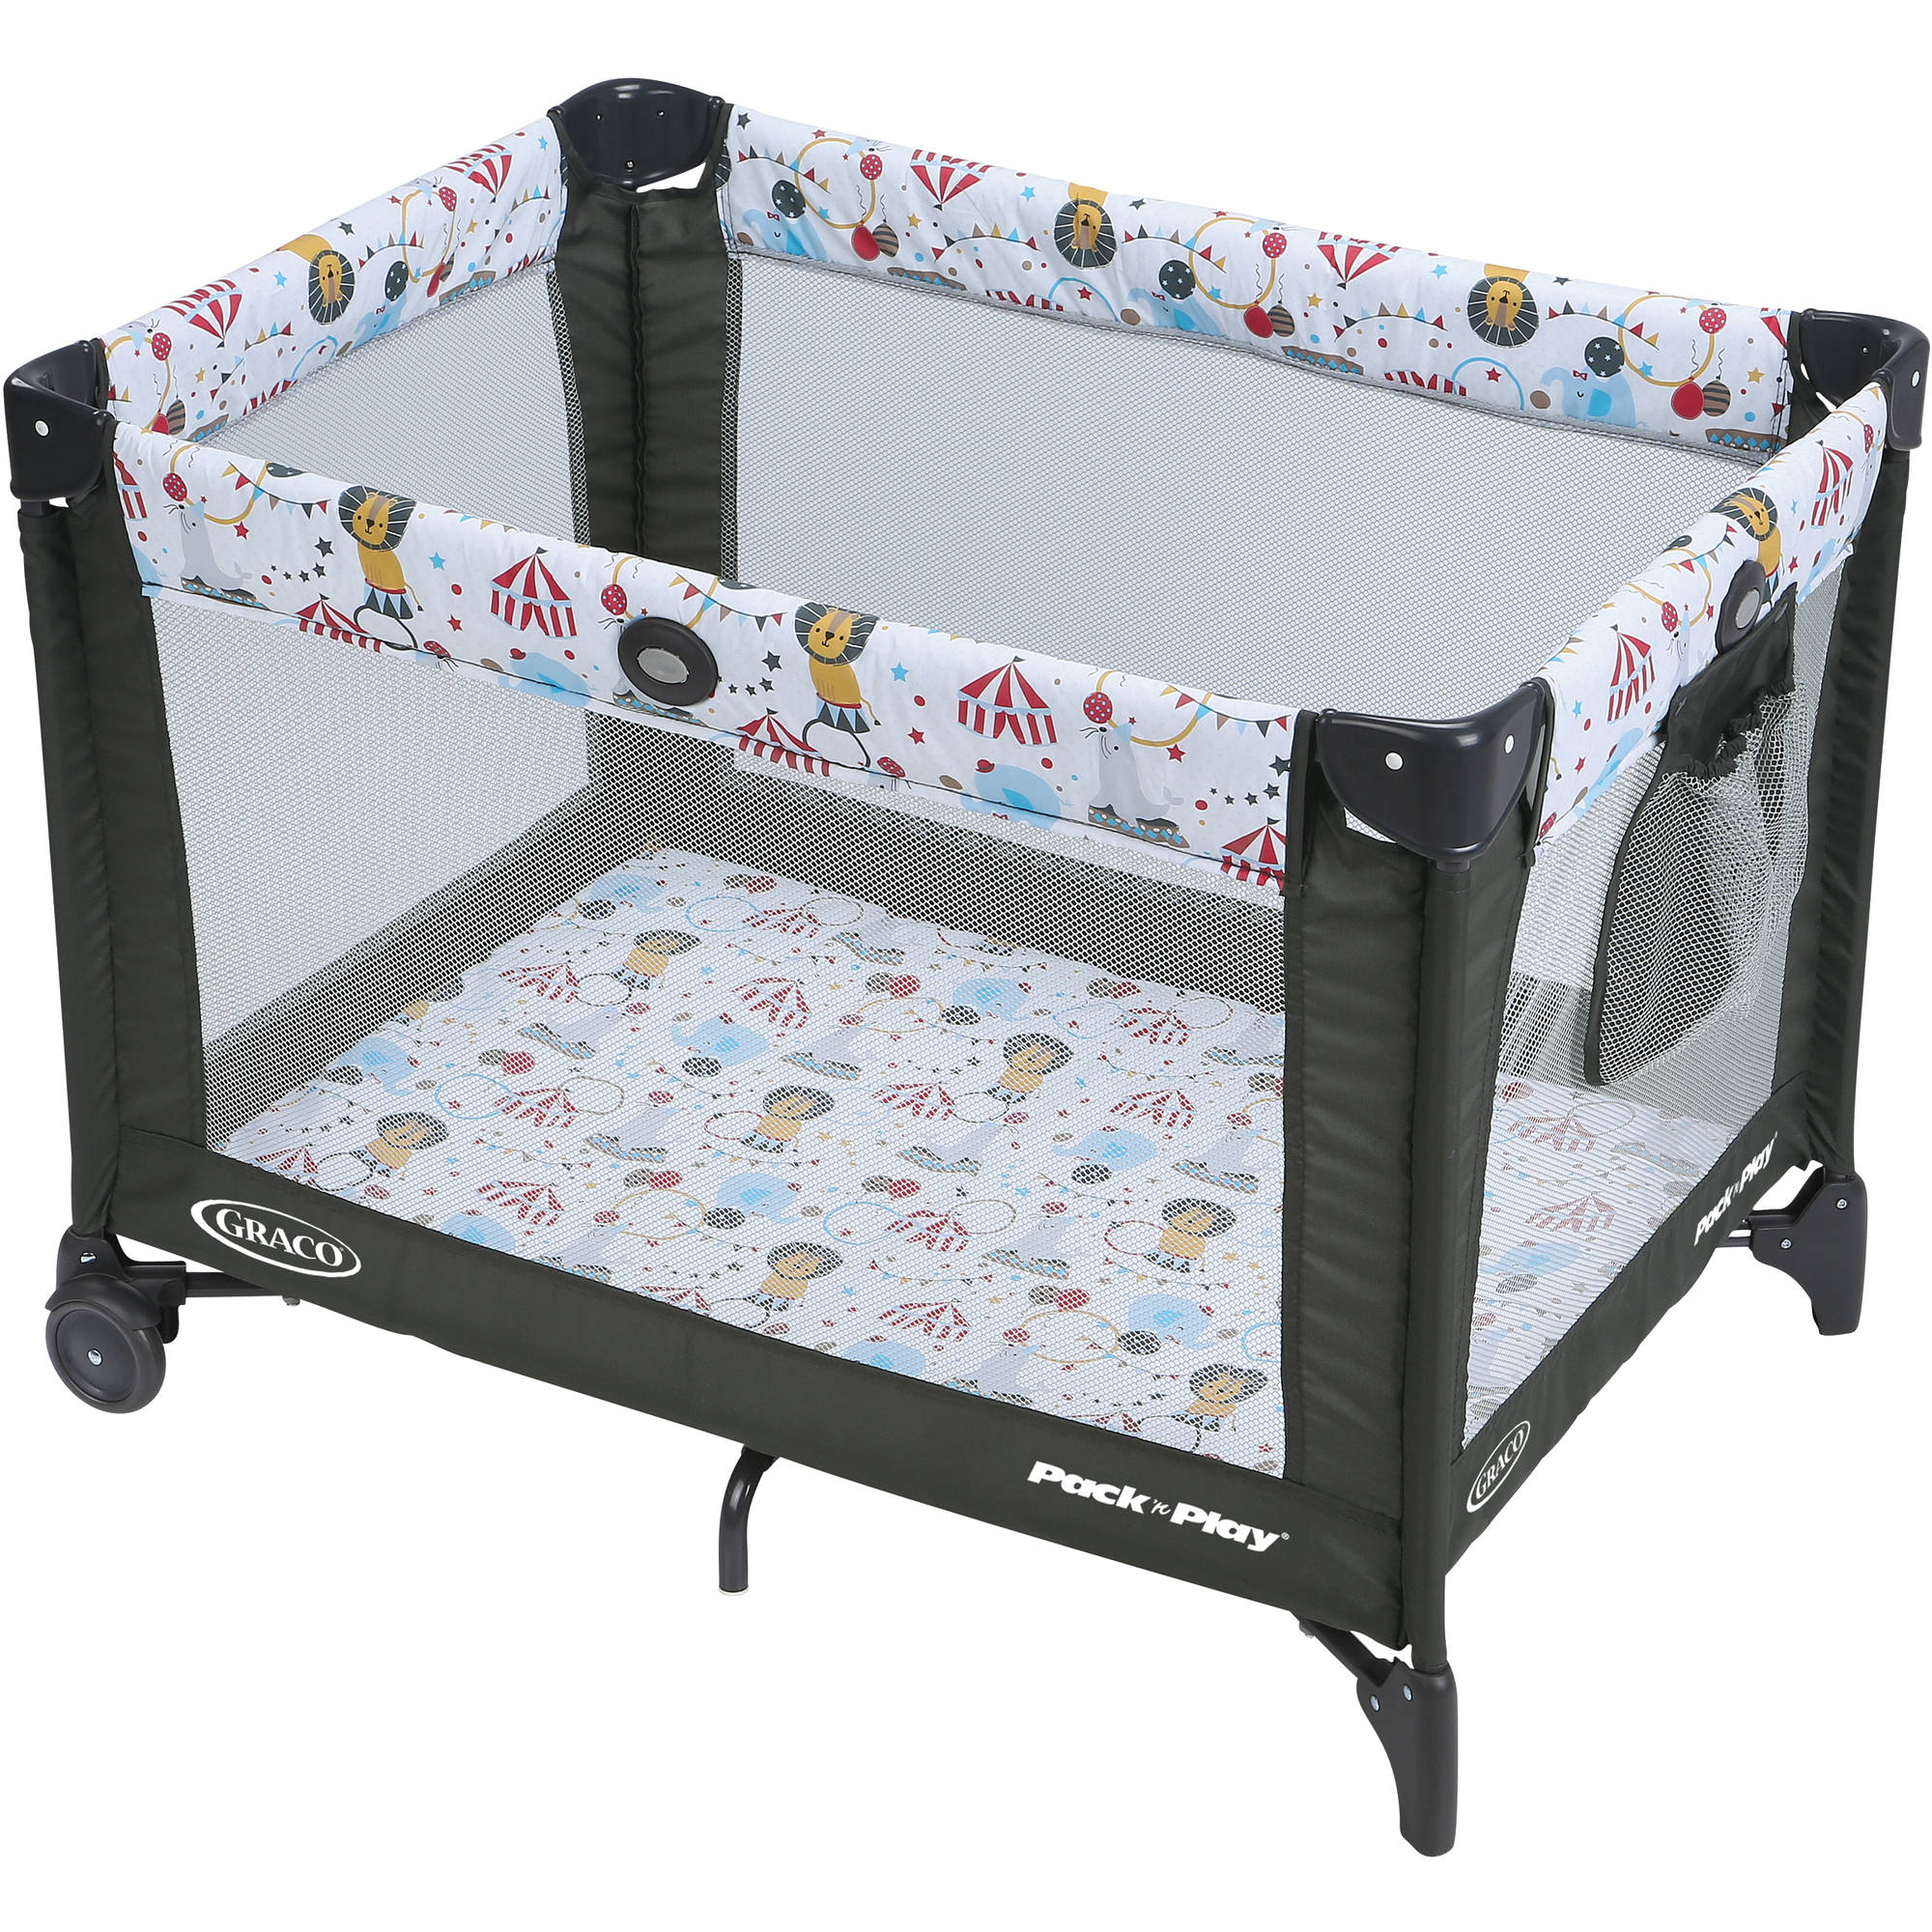 Gocrib adventure crib for sale - Graco Pack N Play Playard On The Go With Folding Feet Circus Time Price